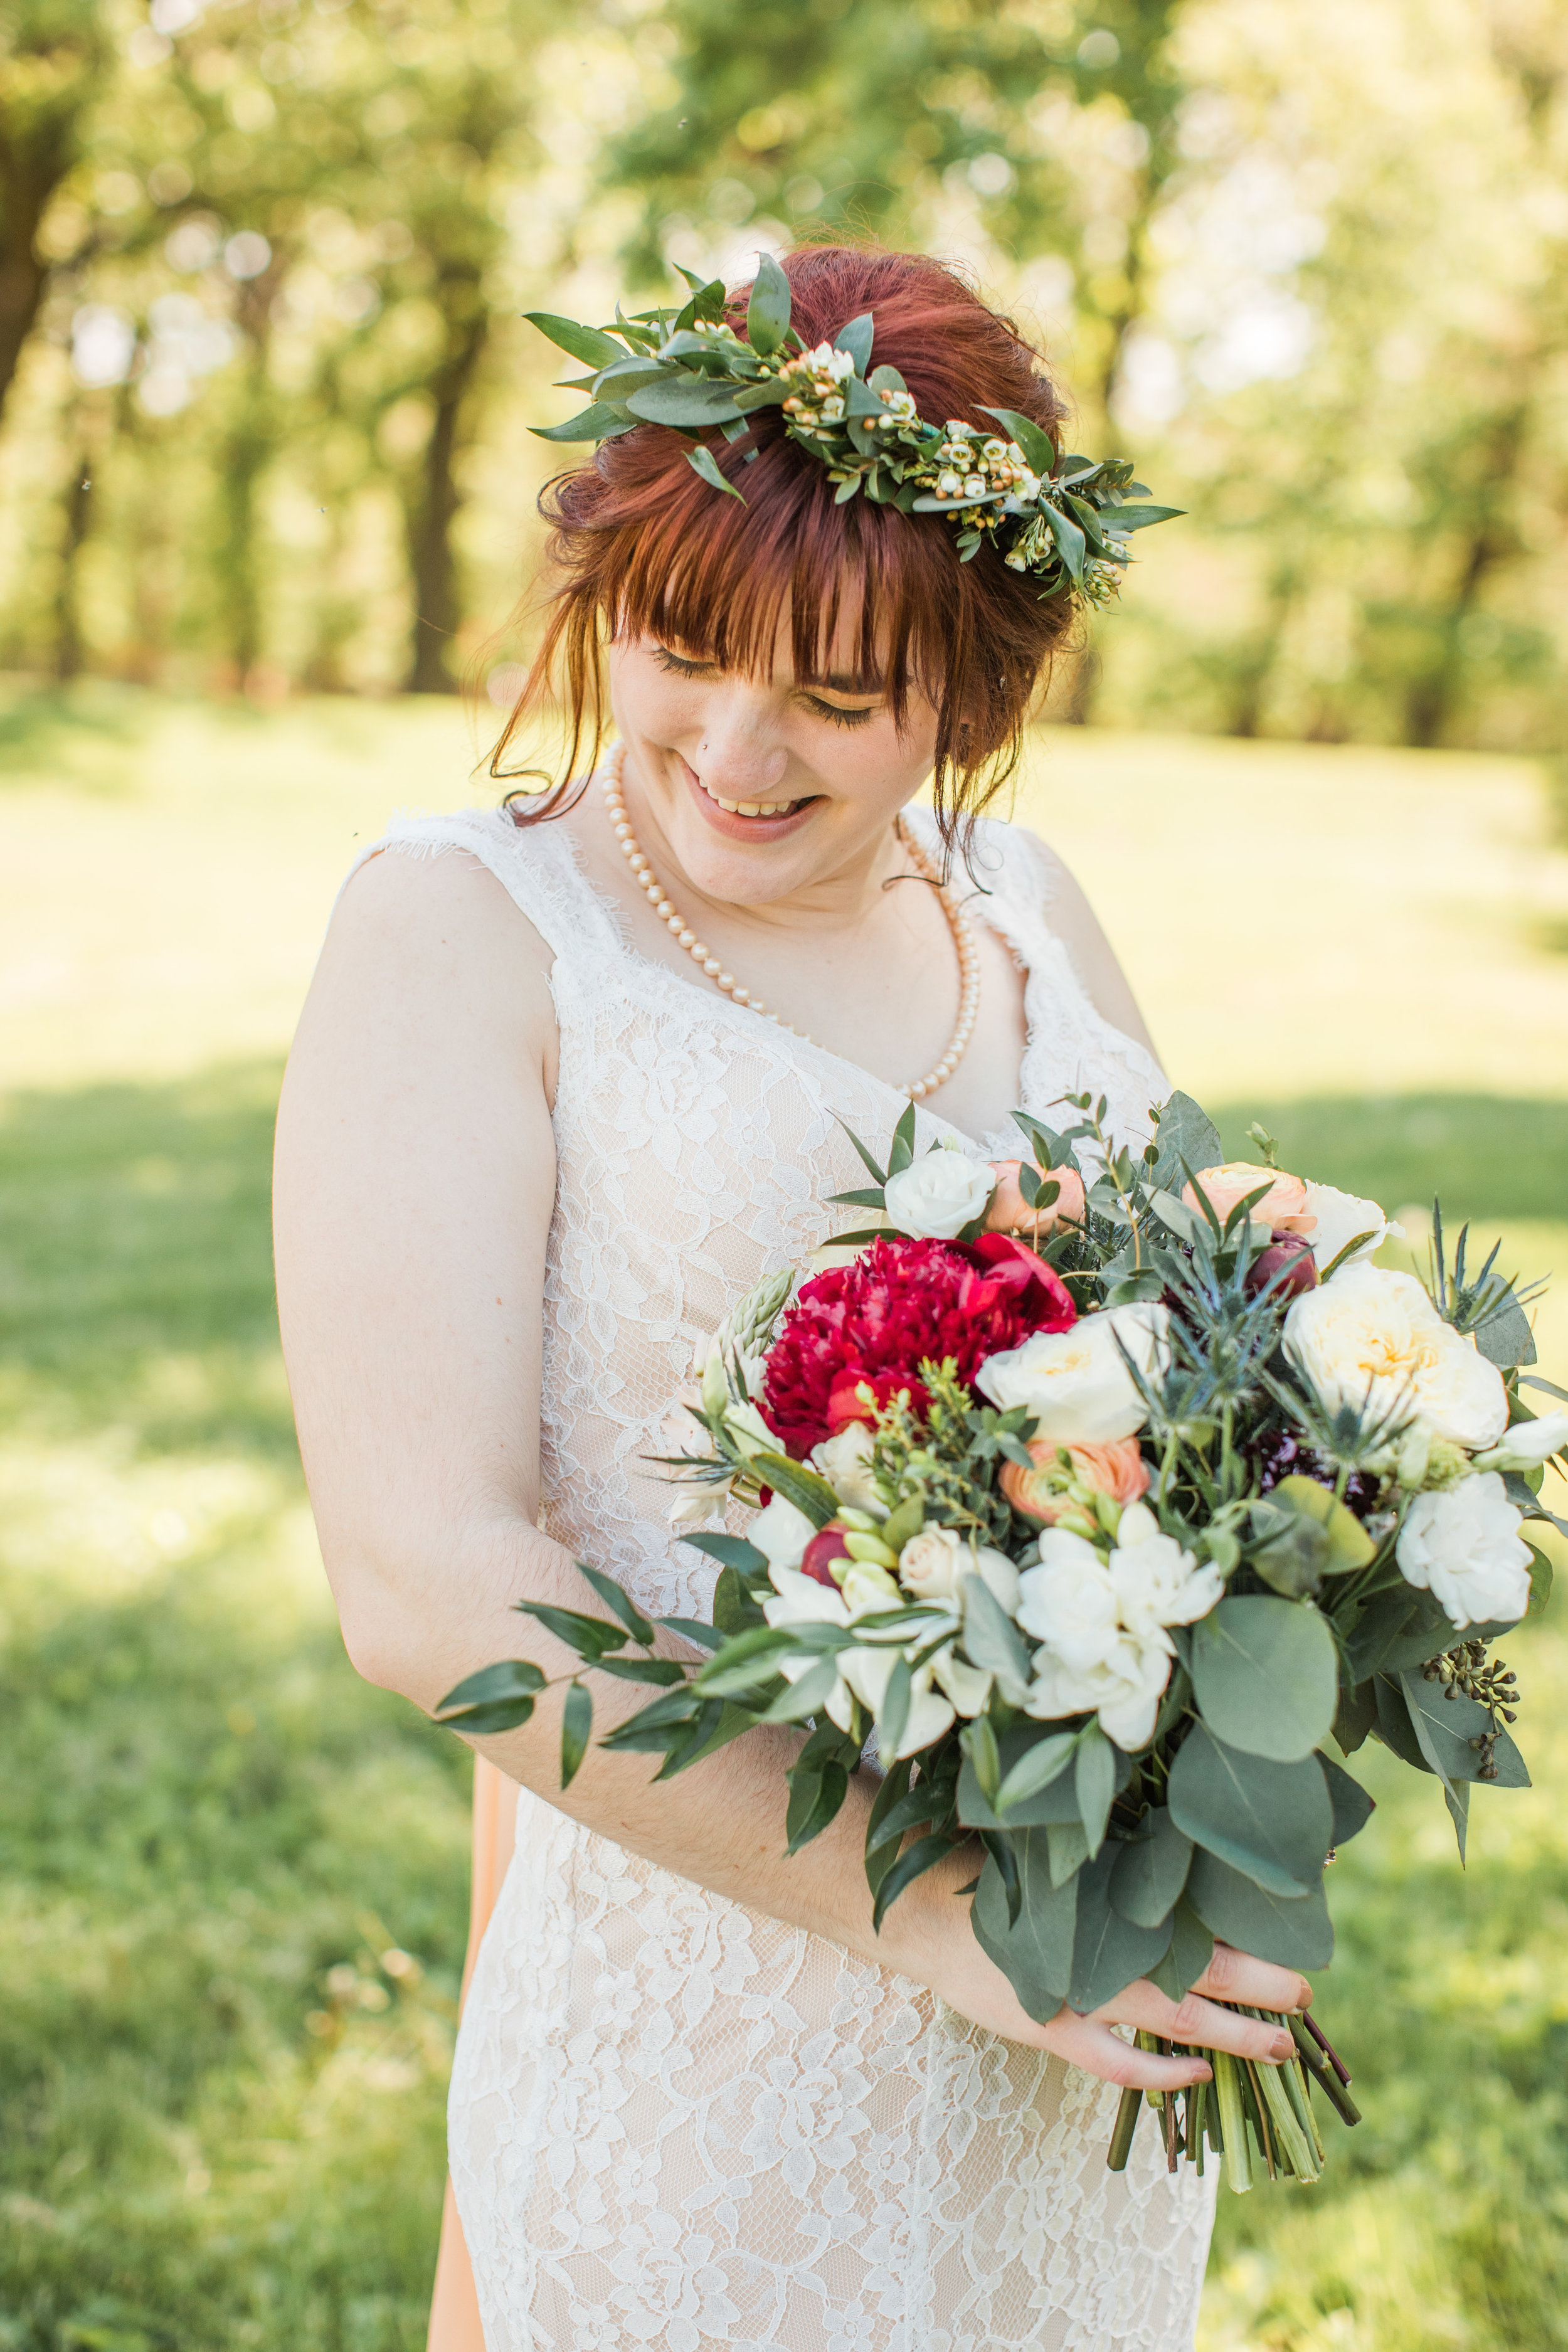 bridal portraits outside with flower crown and large colorful bouquet and wearing lace wedding dress